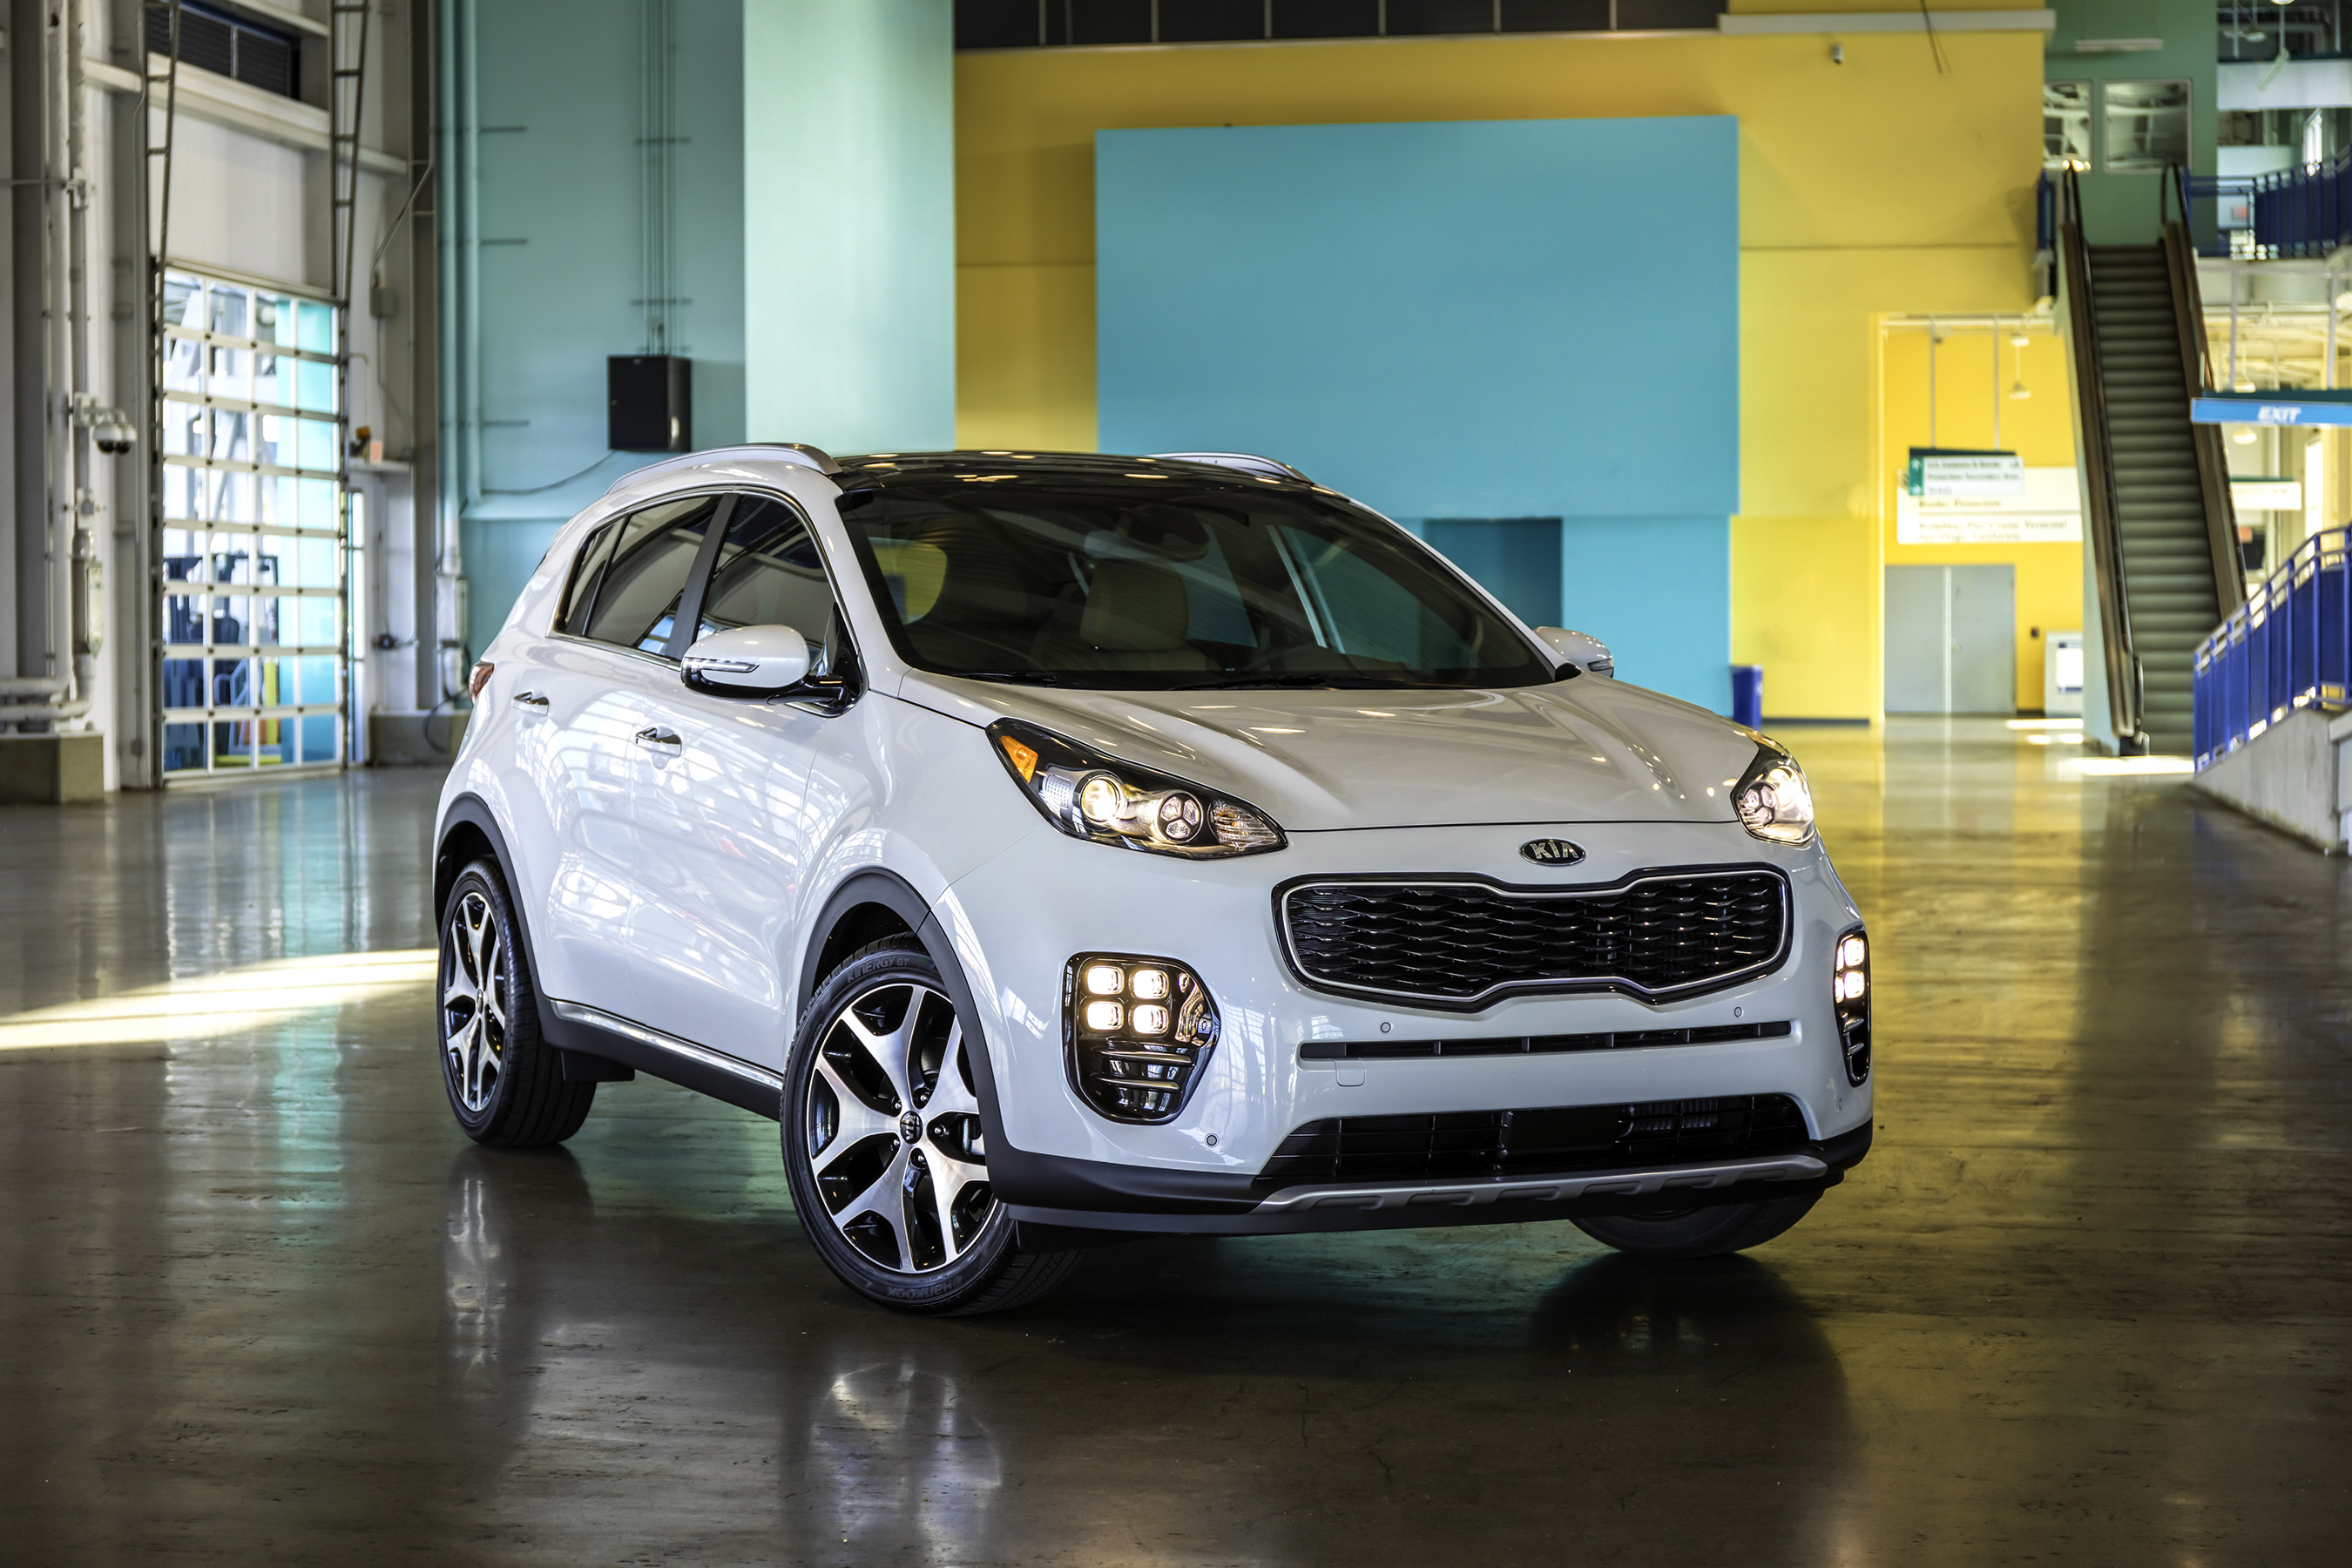 The all-new 2017 Kia Sportage features cutting-edge design, engaging driving dynamics and intelligent packaging.